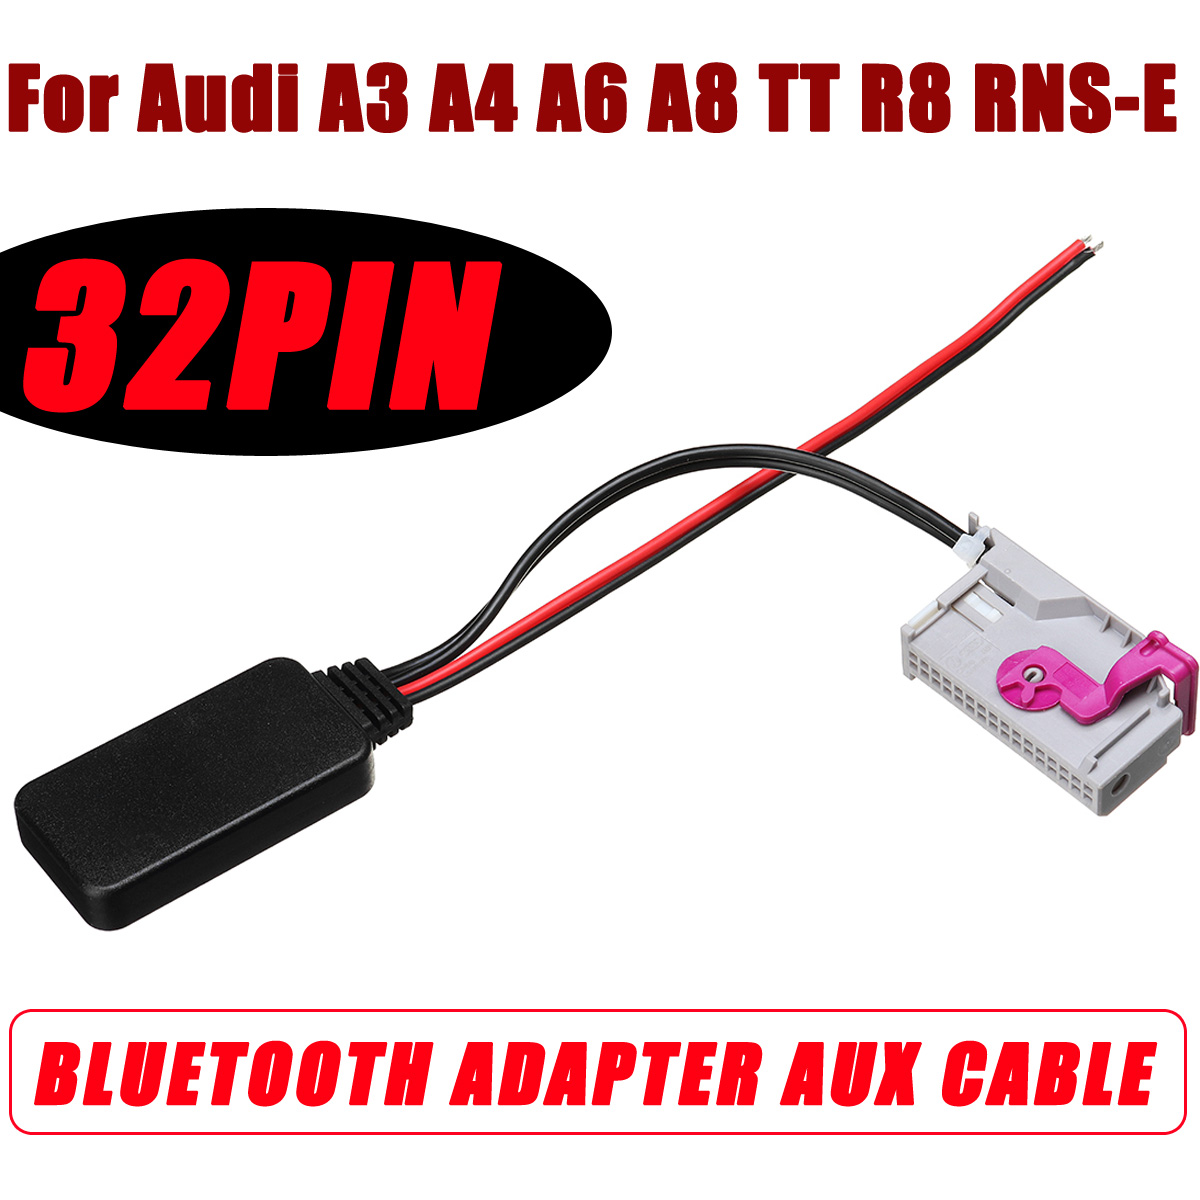 Cheap product audi a3 bluetooth in Shopping World